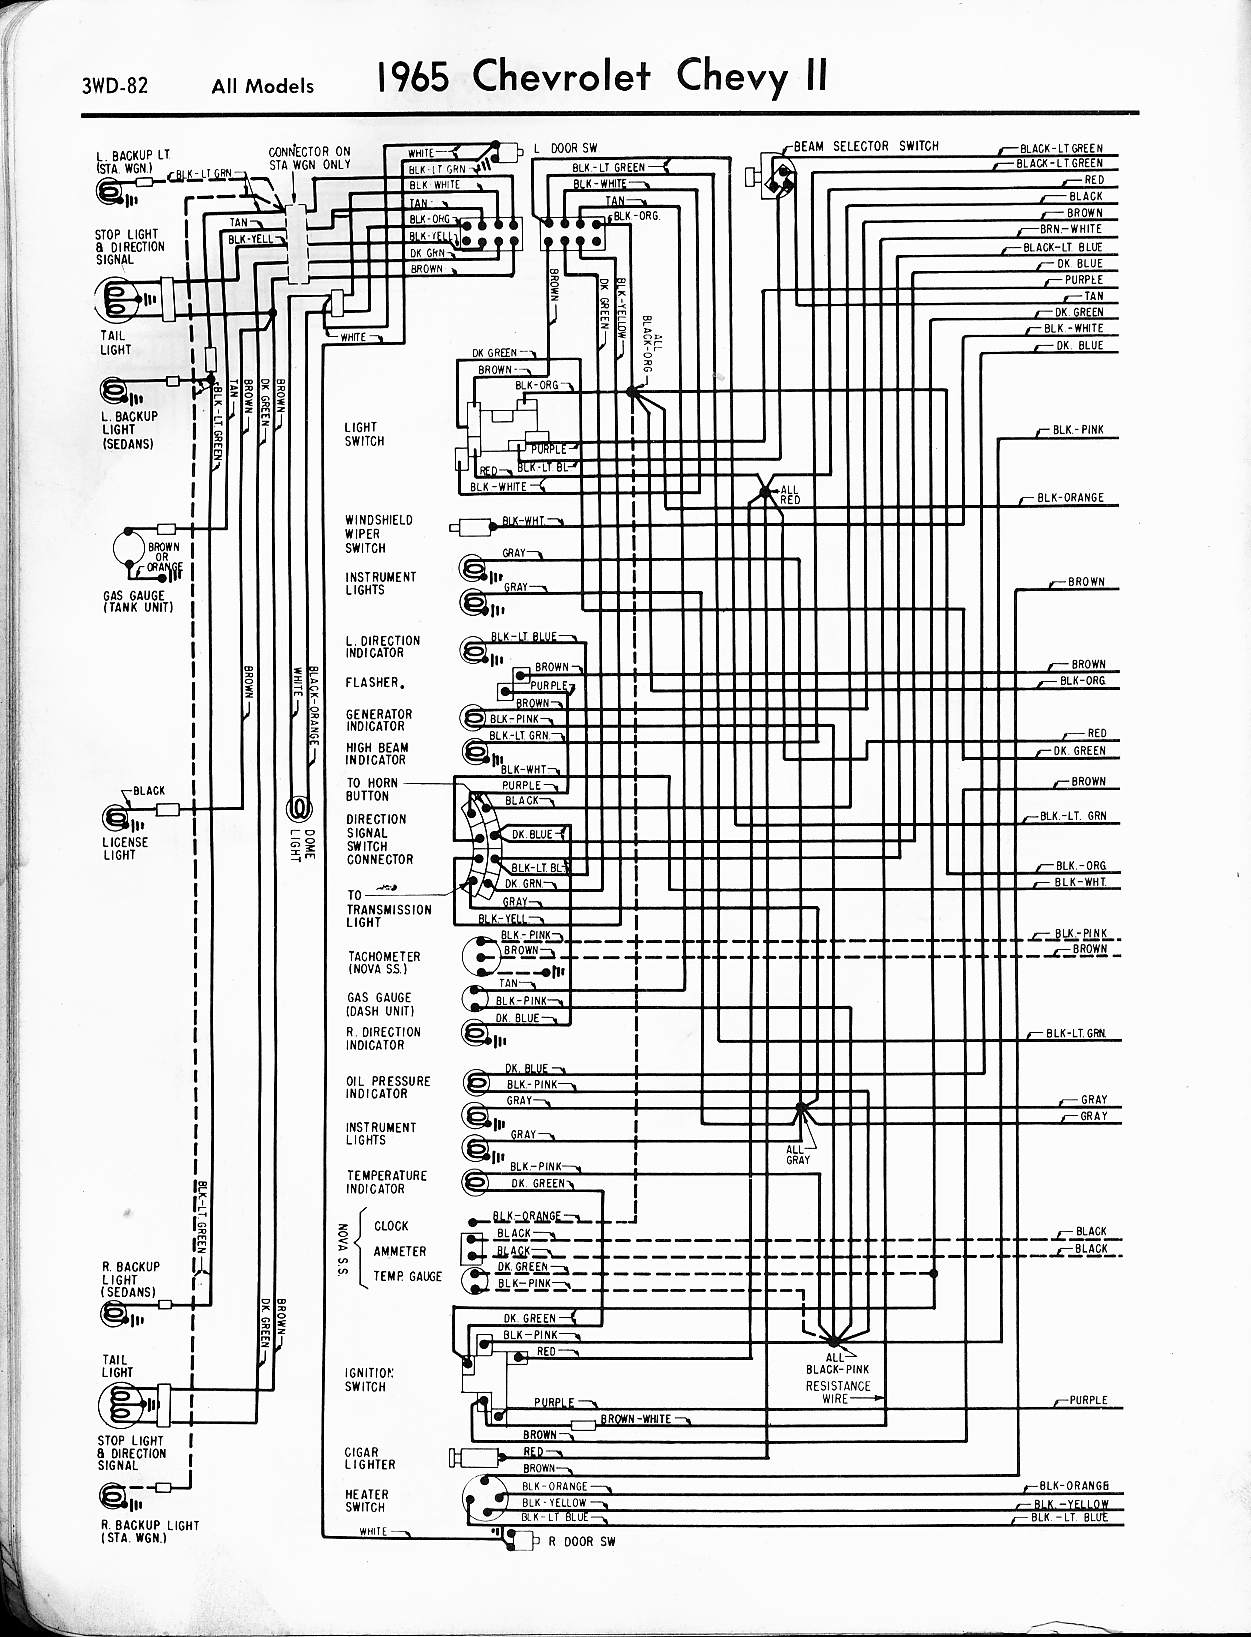 1965 chevrolet wiring diagram wiring diagram expert 1965 Chevy Corvair Wiring-Diagram